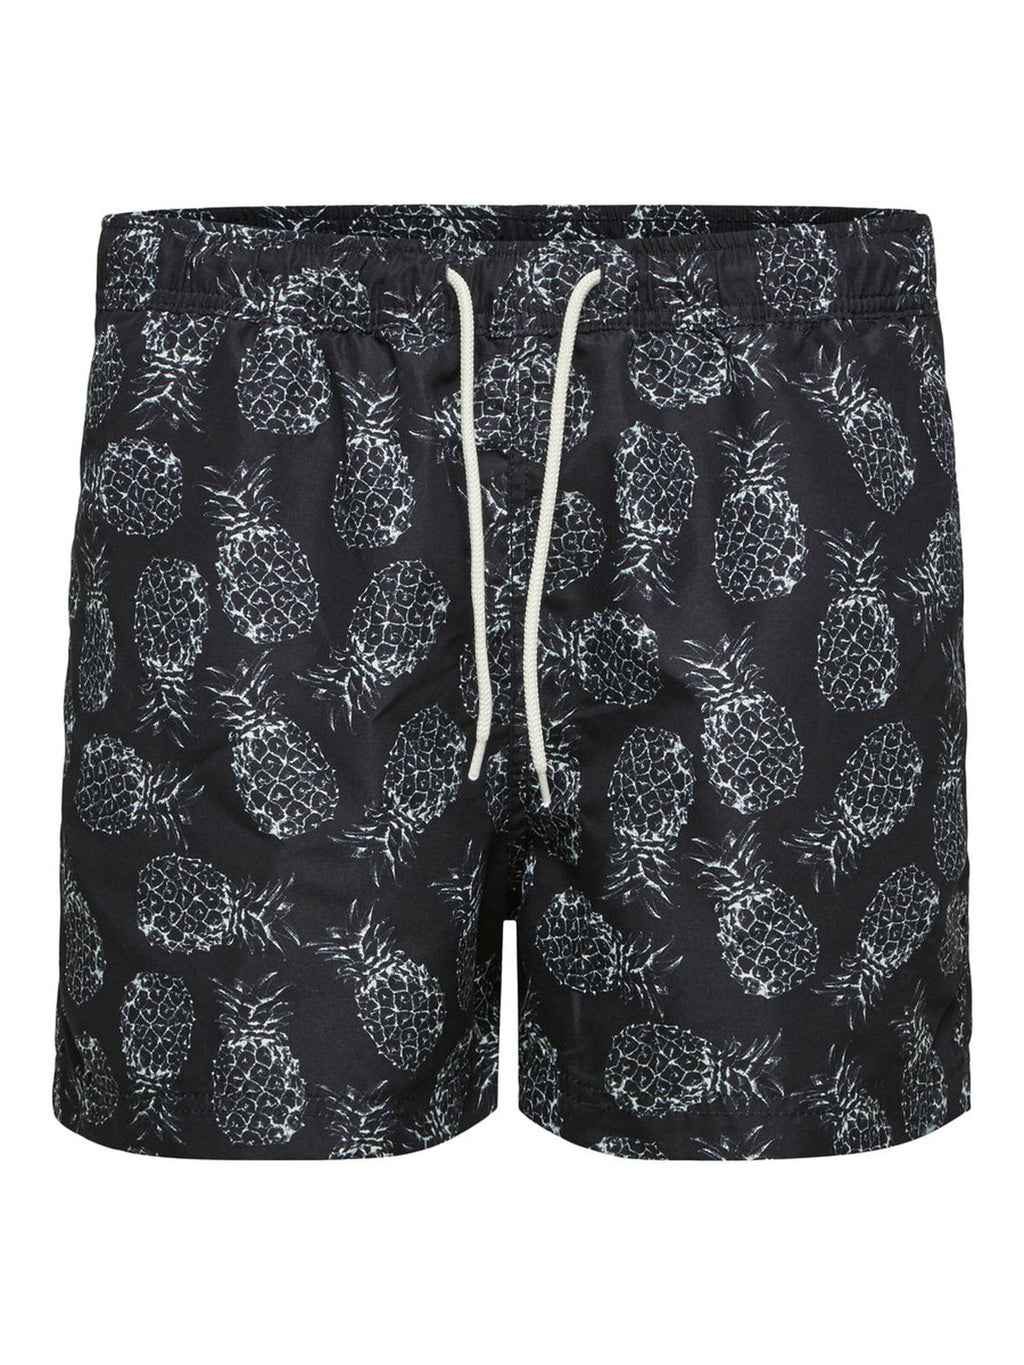 Printed Swim Shorts - Black Pineapple